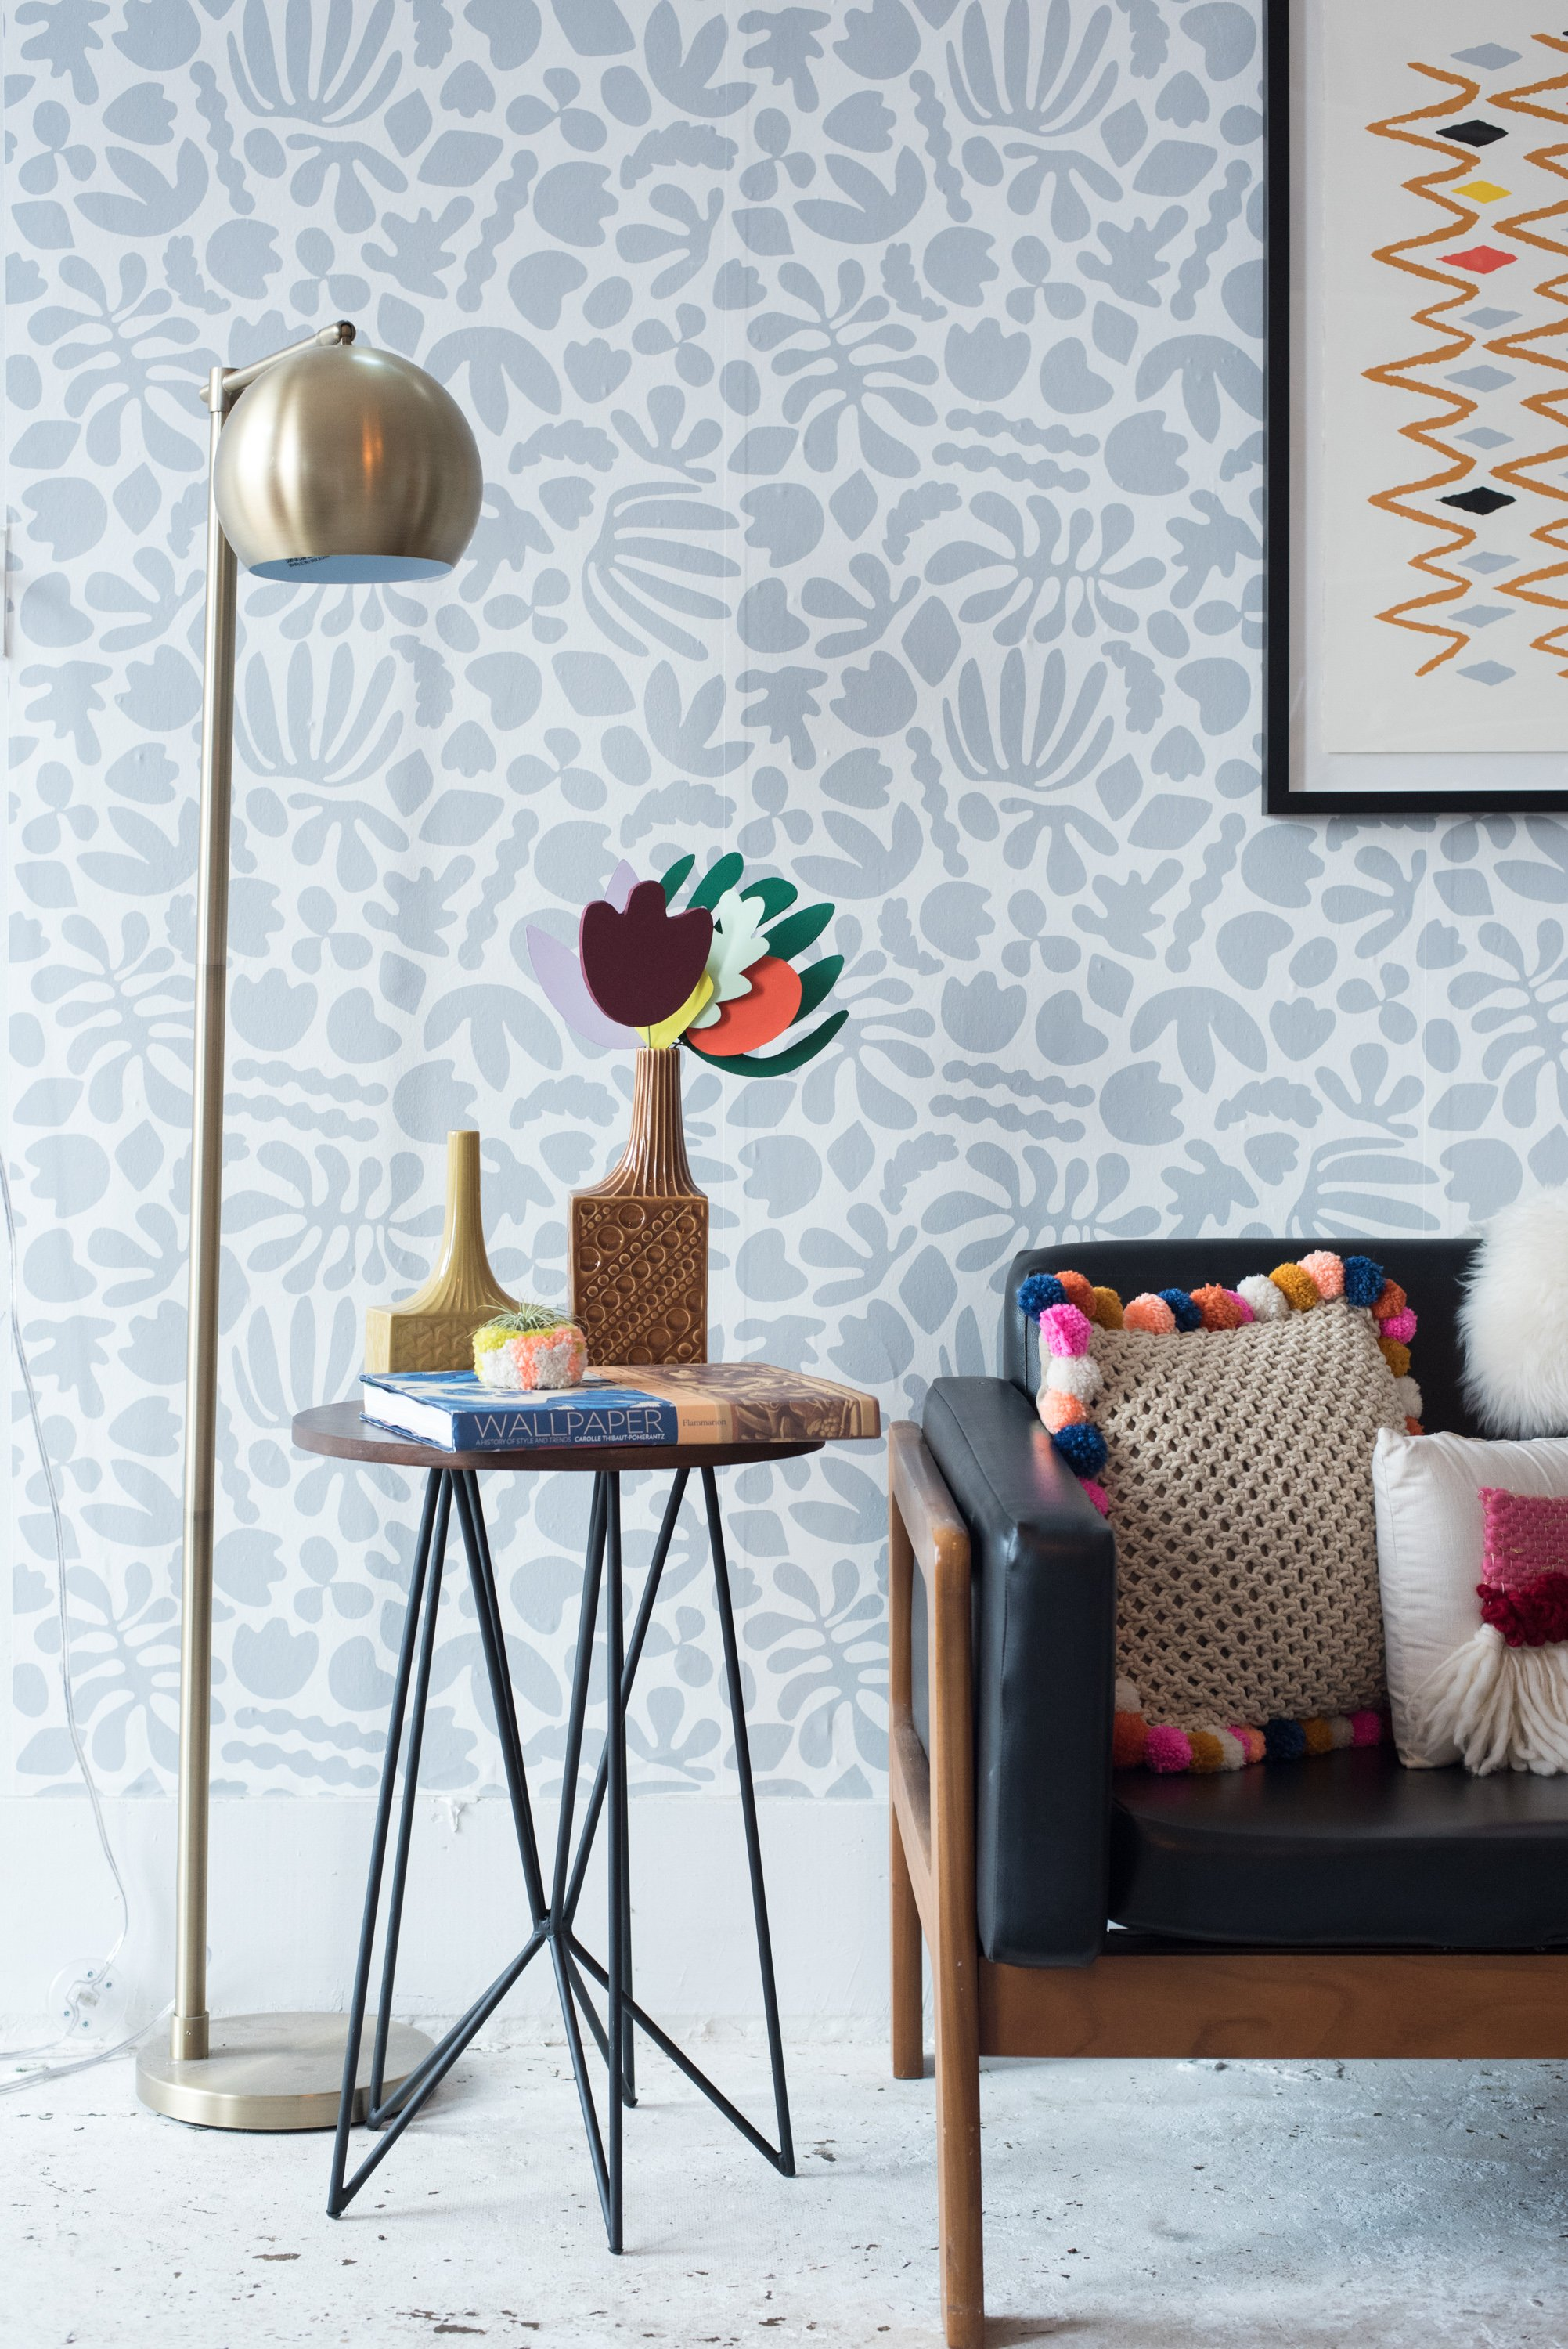 Zaremba's Matisse-inspired wallpaper forms a lively backdrop for the leather sofa and pom pom pillows.